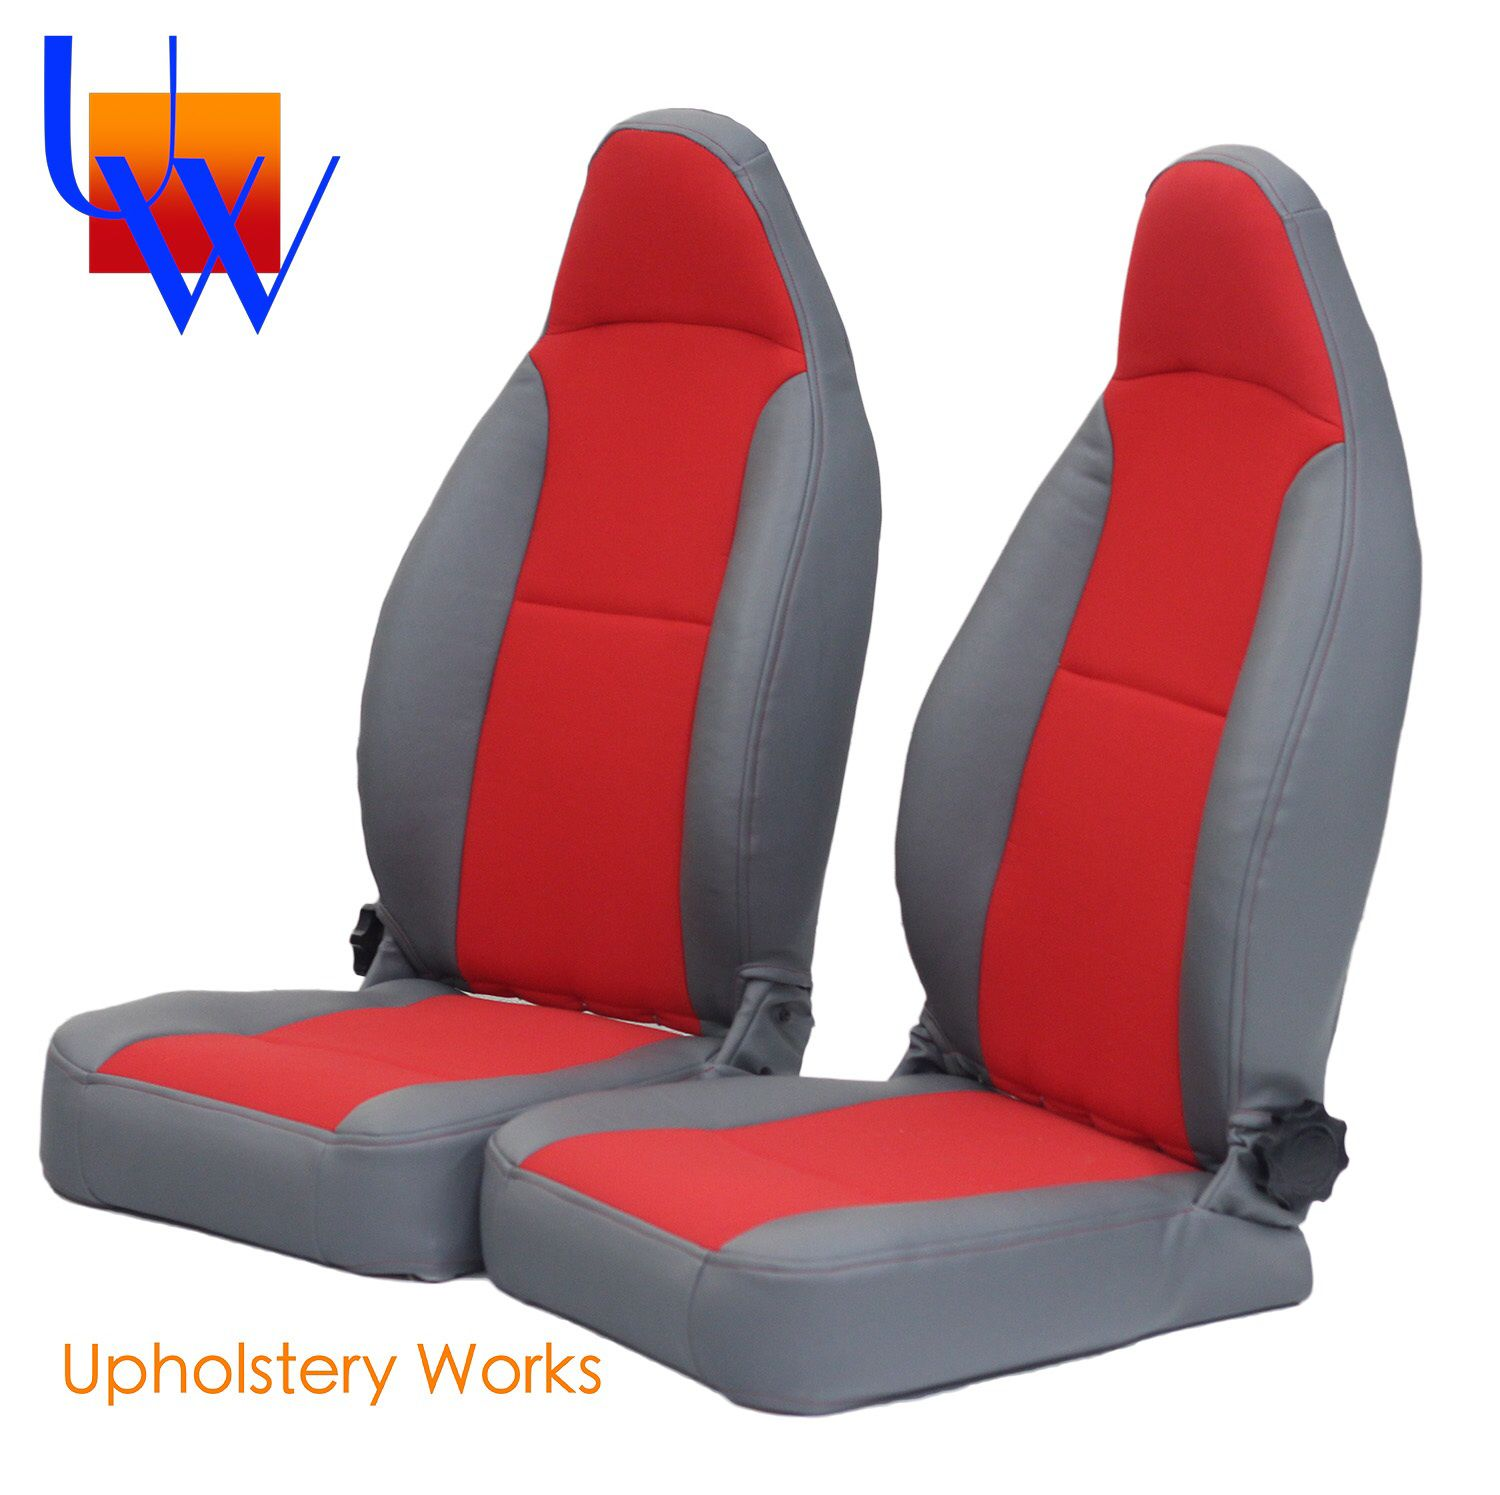 Upholstery Works Frodo Fullring Co